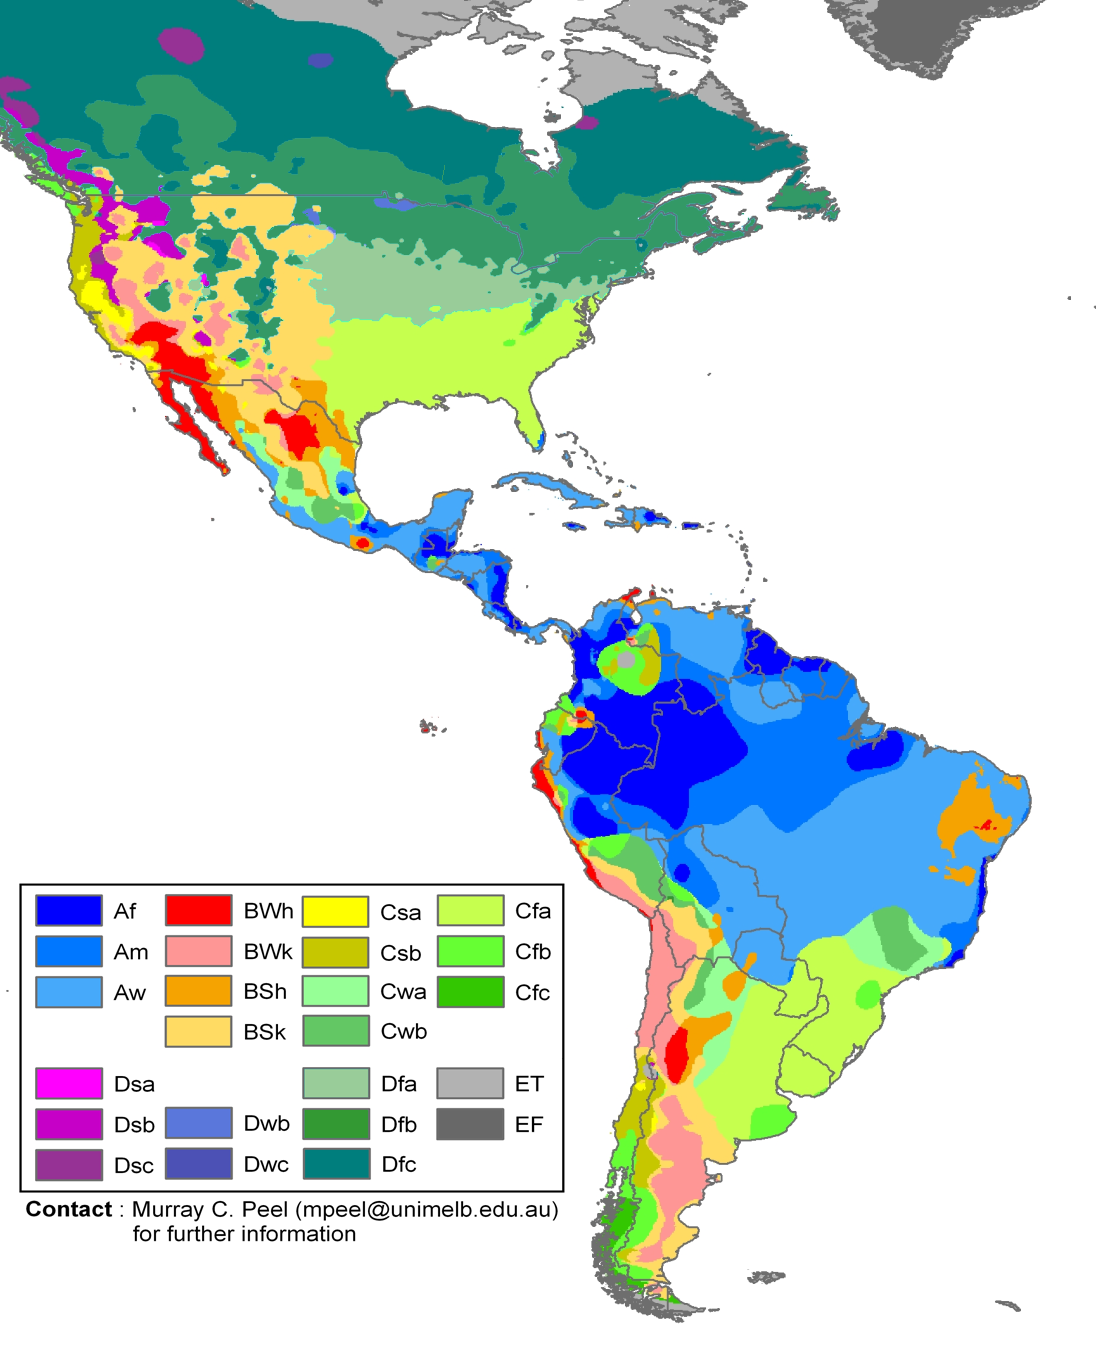 📌 Köppen climate clification on koppen classification map, doe climate zone map united states, pull down classroom map united states, epa region map united states, average wind speed map united states, climate southeast united states, seven climate zones united states, us zip codes map united states, temperate deciduous forest in united states, humid continental climate united states, climate of united states, us map continental united states, nuclear power plant map united states, humidity map united states, climate change map united states, subtropical map united states, average january temperature map united states, temperate climate in united states, u.s. climate map united states, vegetation map of the united states,